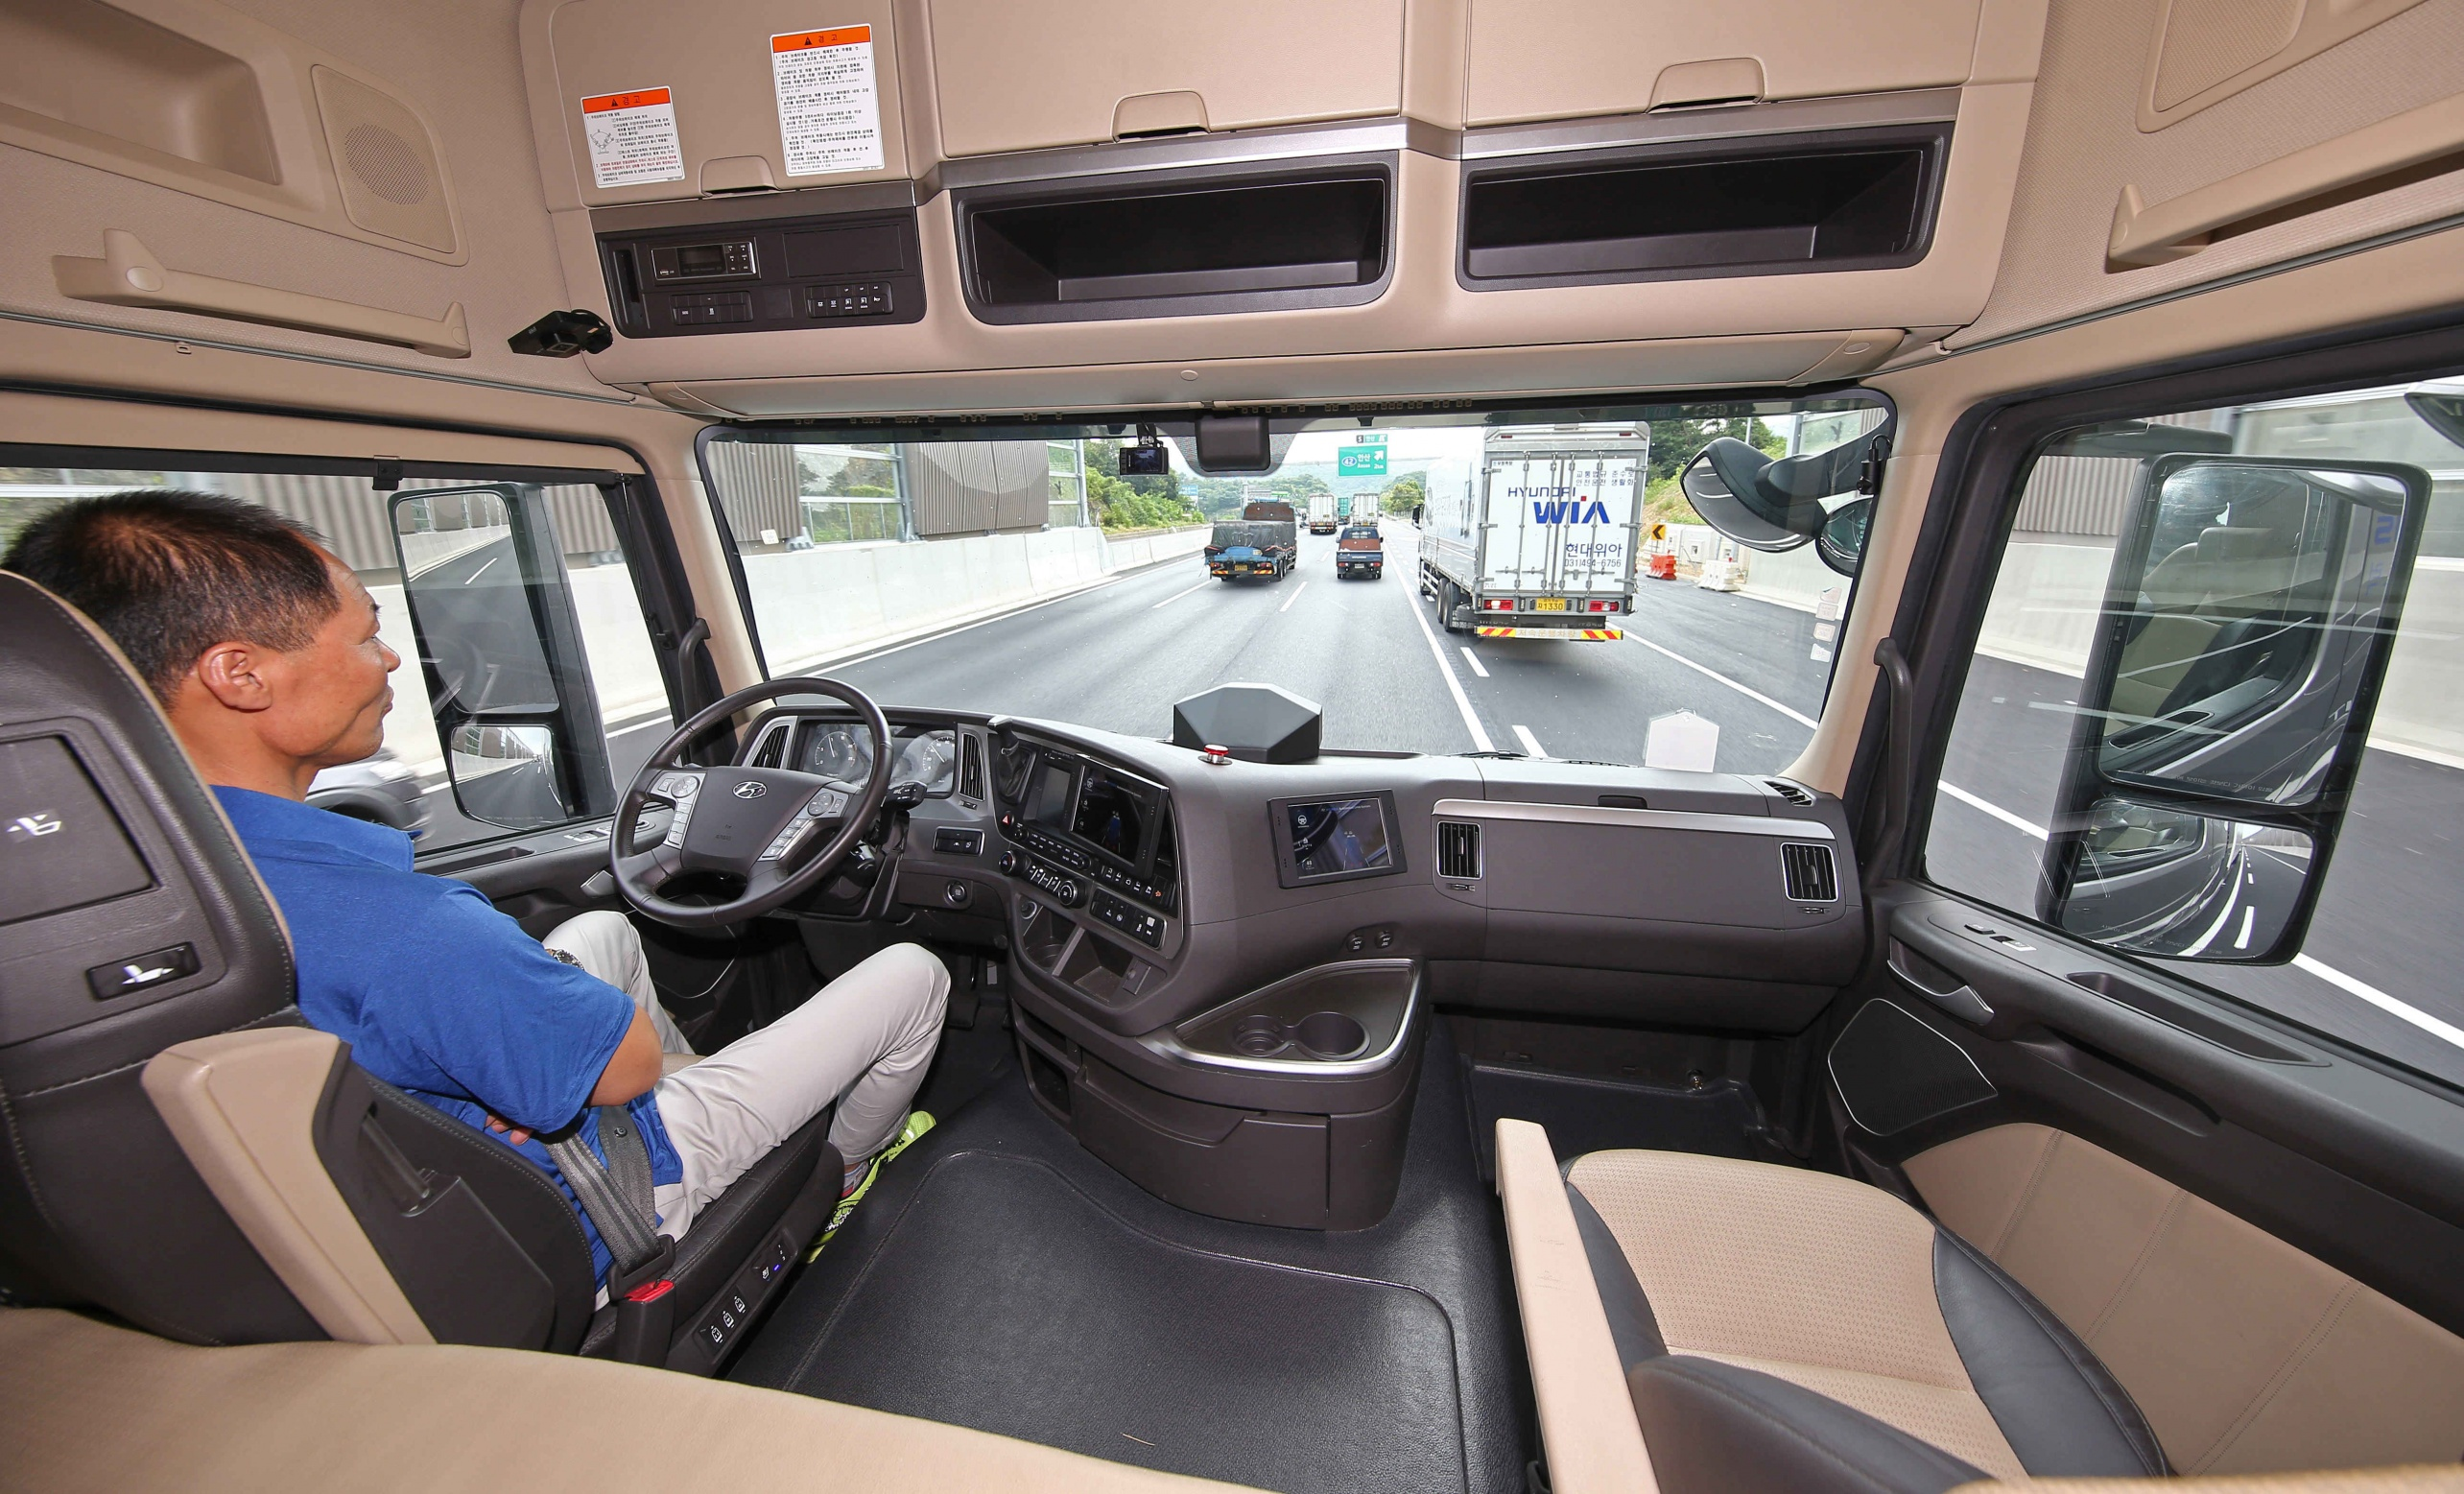 Hyundai___s First Domestic Autonomous Truck 4.jpg